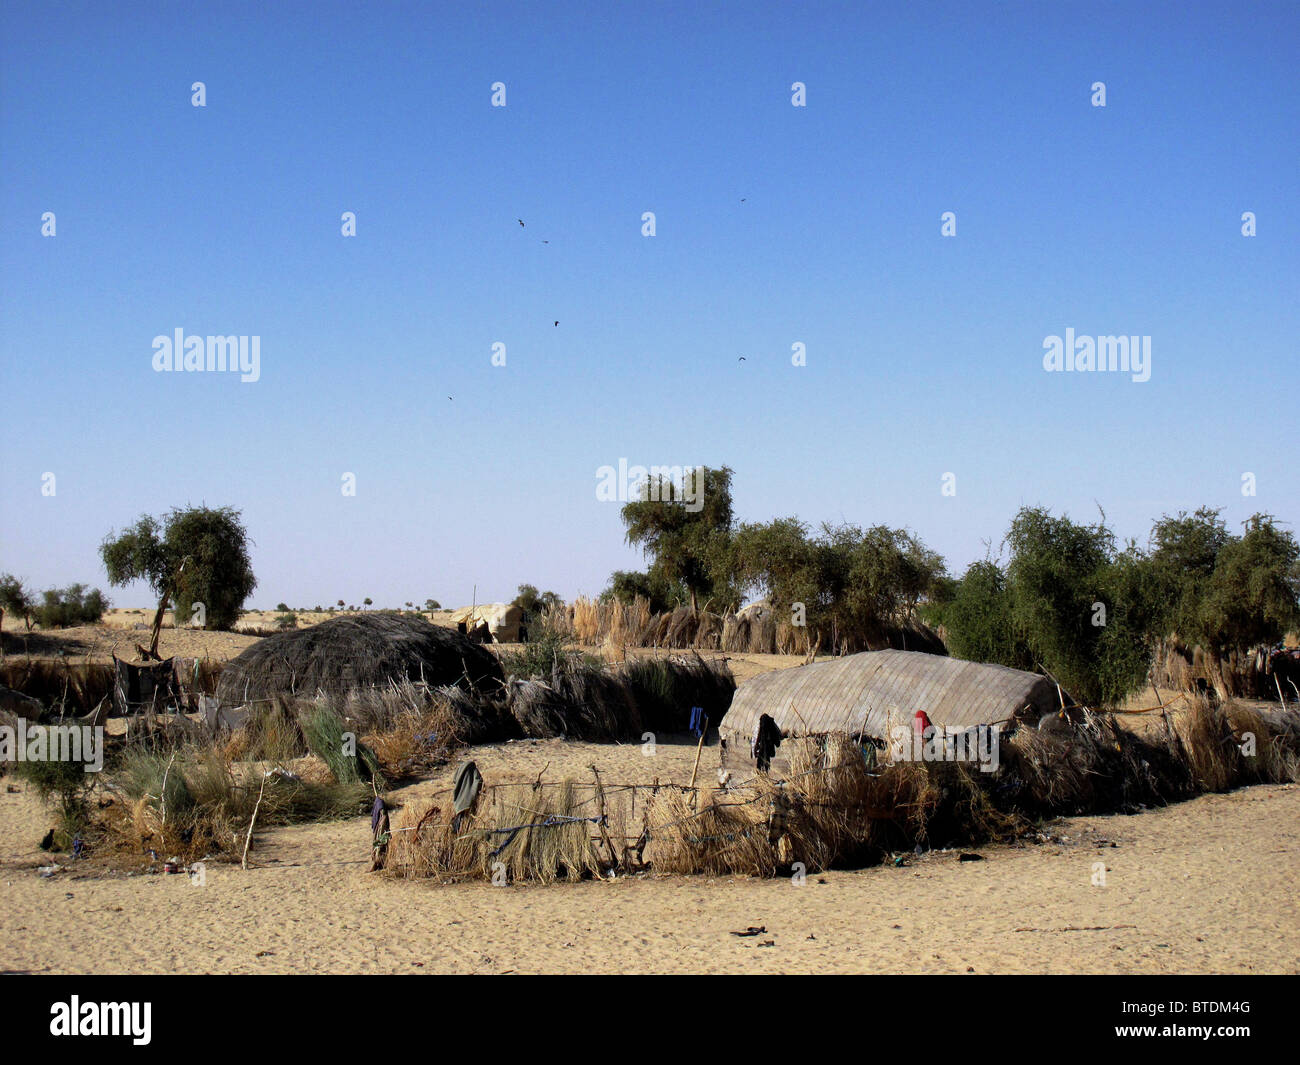 A rural village with huts and fences made of thatch - Stock Image